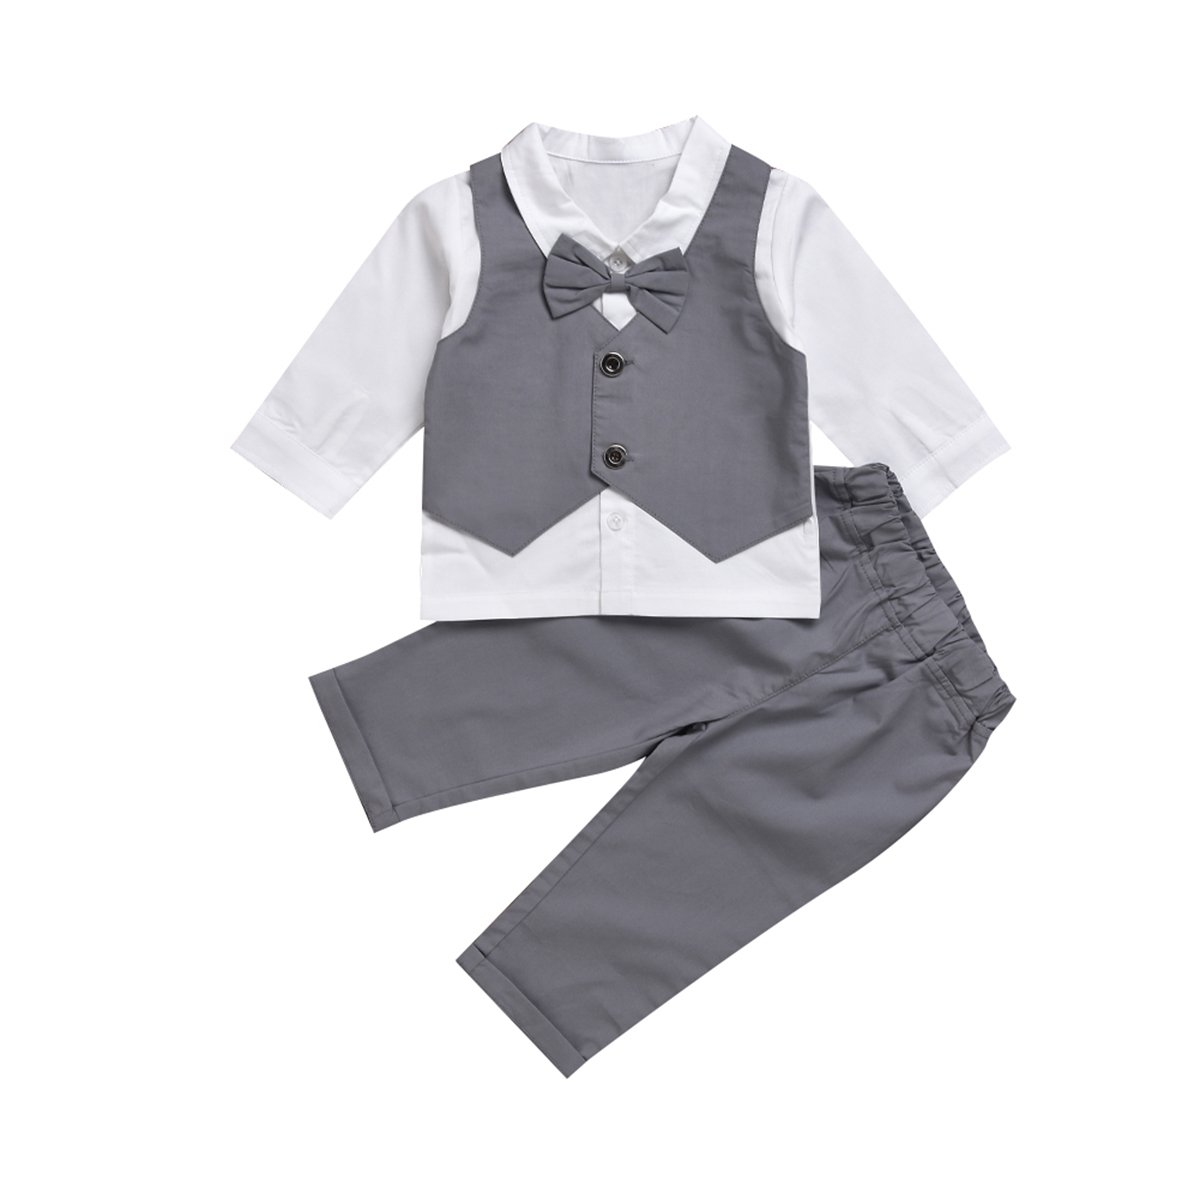 Puseky Baby Boys Gentleman Suit Bow Tie Shirt + Pants Formal Outfit Clothes Set (12-24 Months, White+Grey)